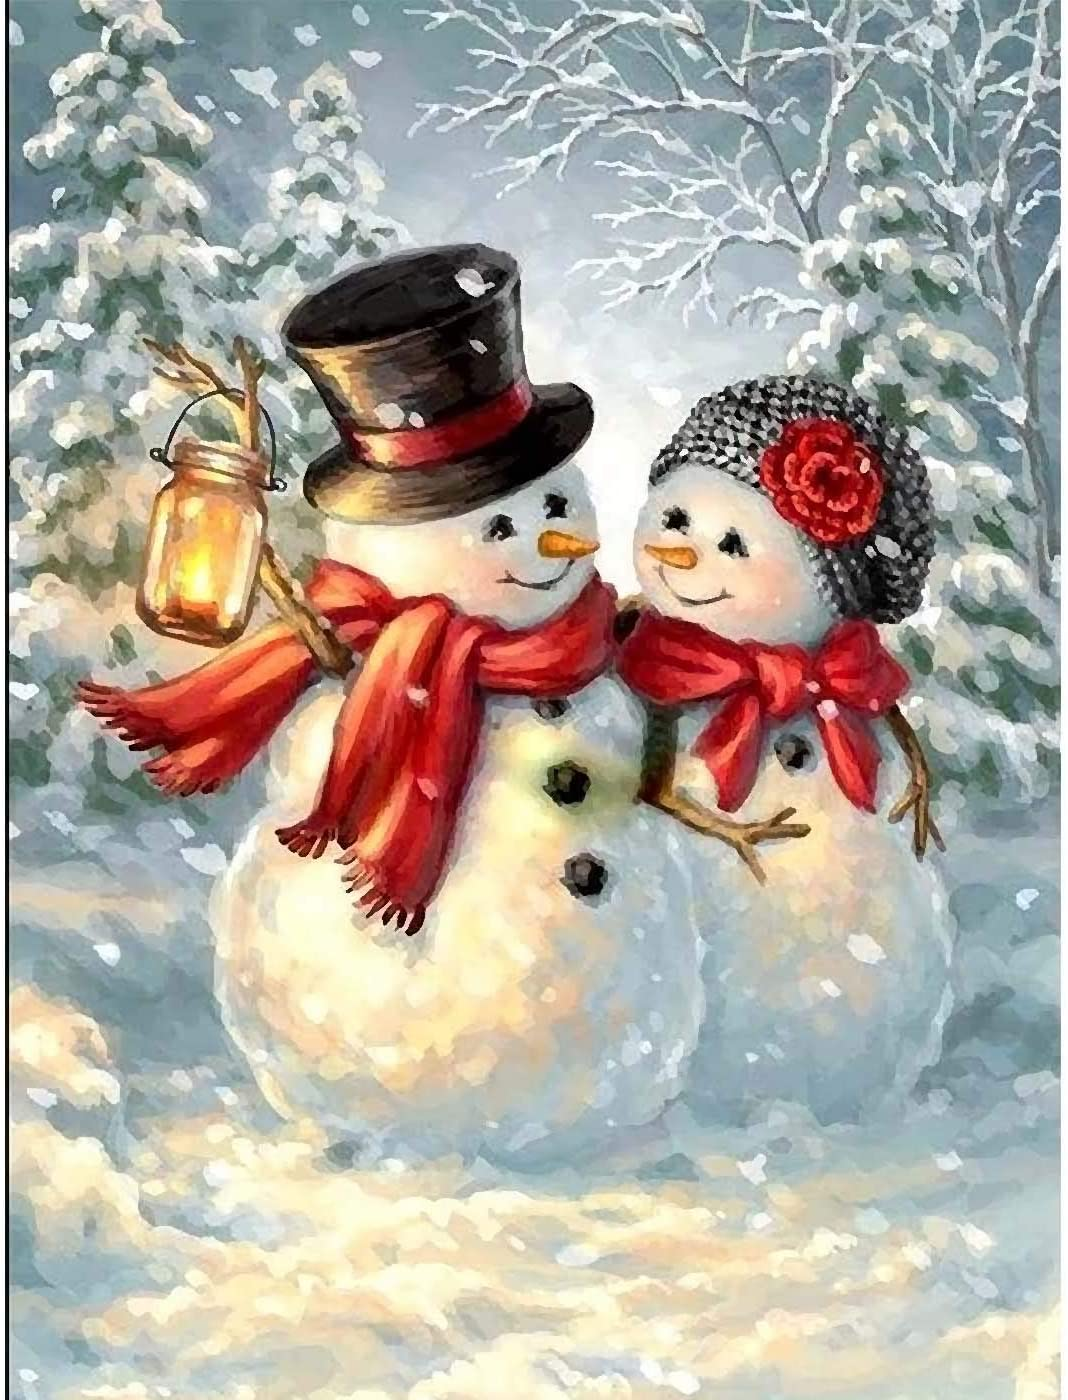 Kaliosy 5D Diamond Painting Snowman Christmas Couple Street Lights by Number Kits Paint with Diamonds Art for Adults DIY Crystal Craft Full Drill Cross Stitch Decoration 12x16inch